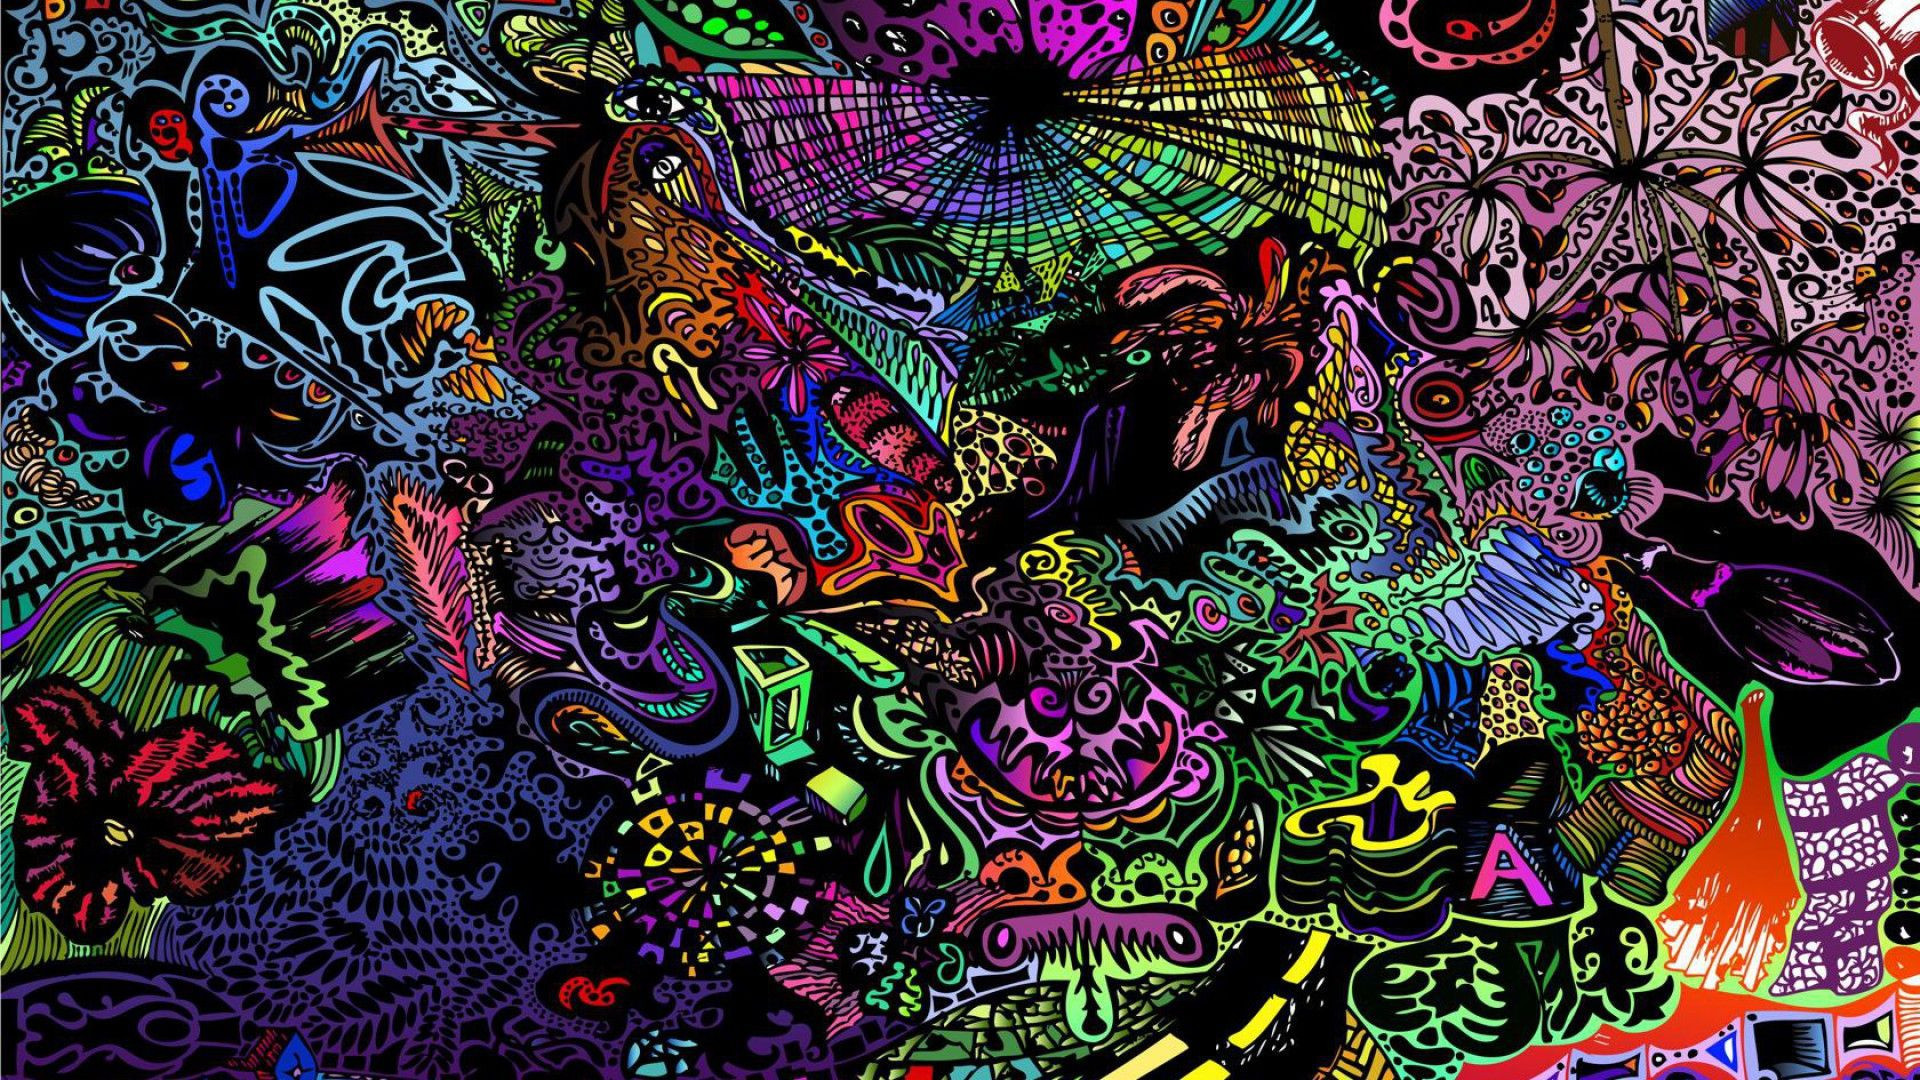 Res: 1920x1080, Desktop Wallpaper Psychedelic Art Illuminati Wallpaper Tumblr Google Da Ara  Trippy